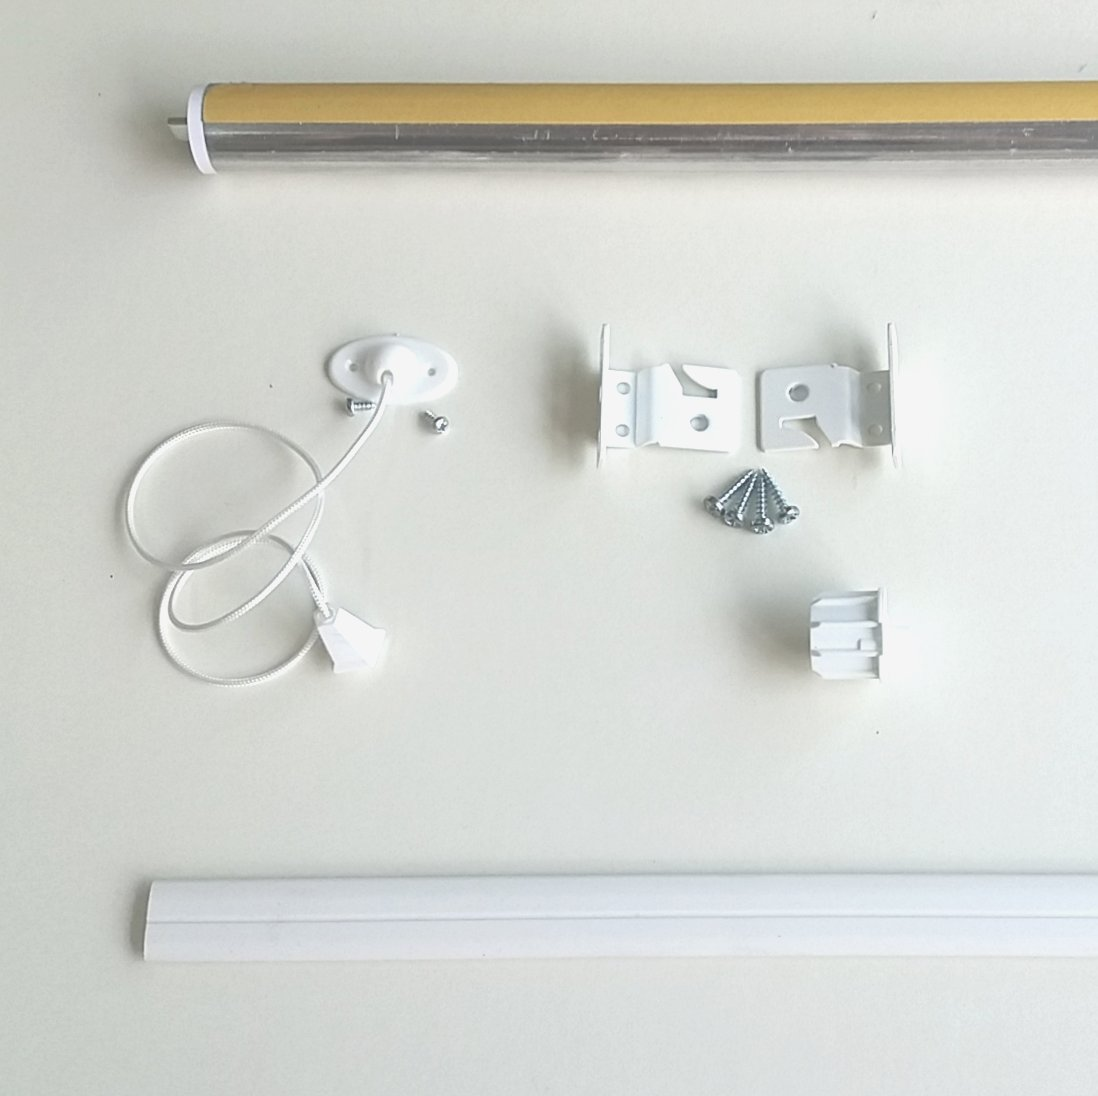 Roller Blinds Spare Parts Uk Motorjdi Co